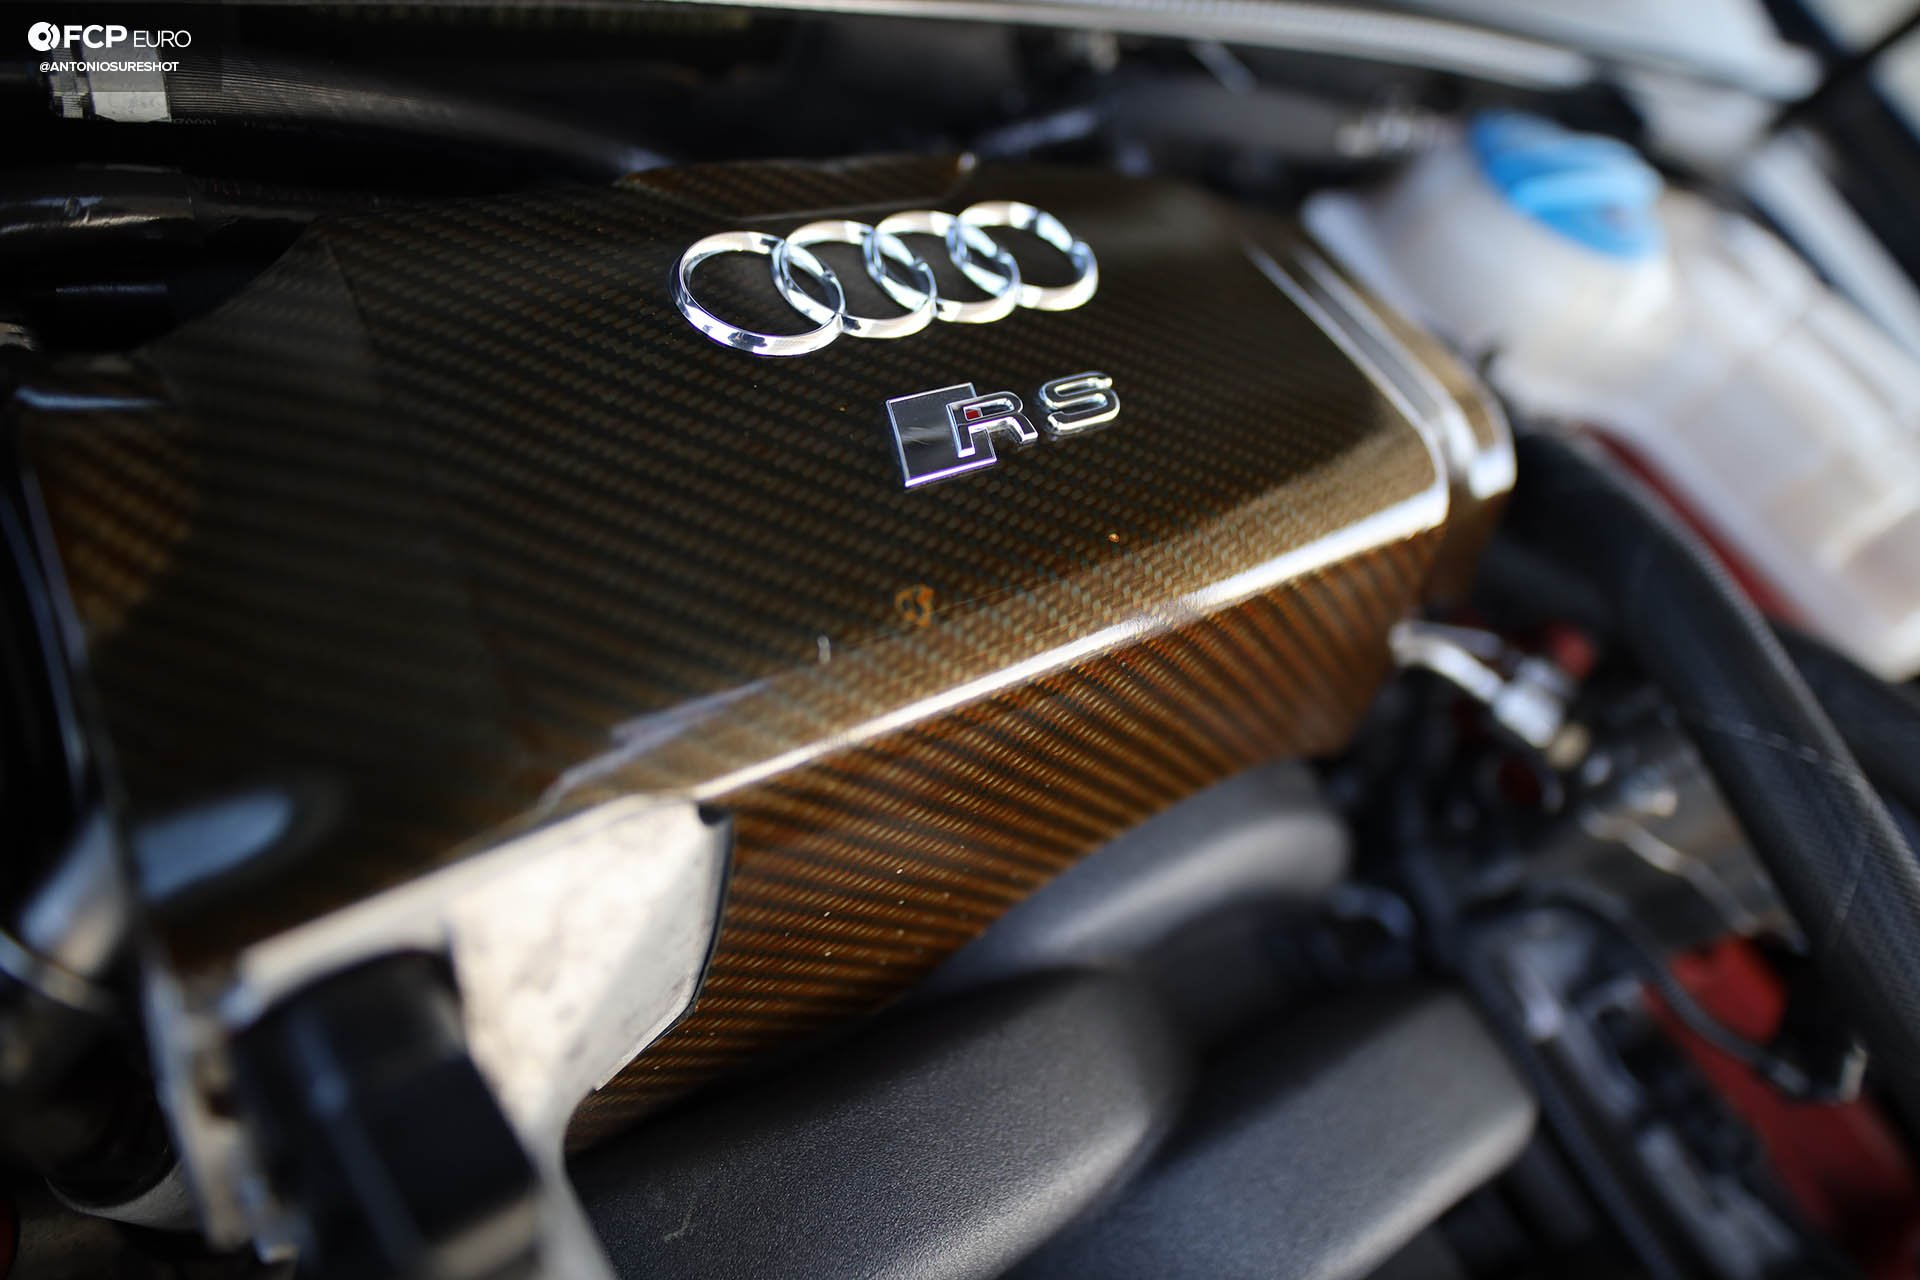 B7 Audi RS4 engine bay carbon fiber intake manifold